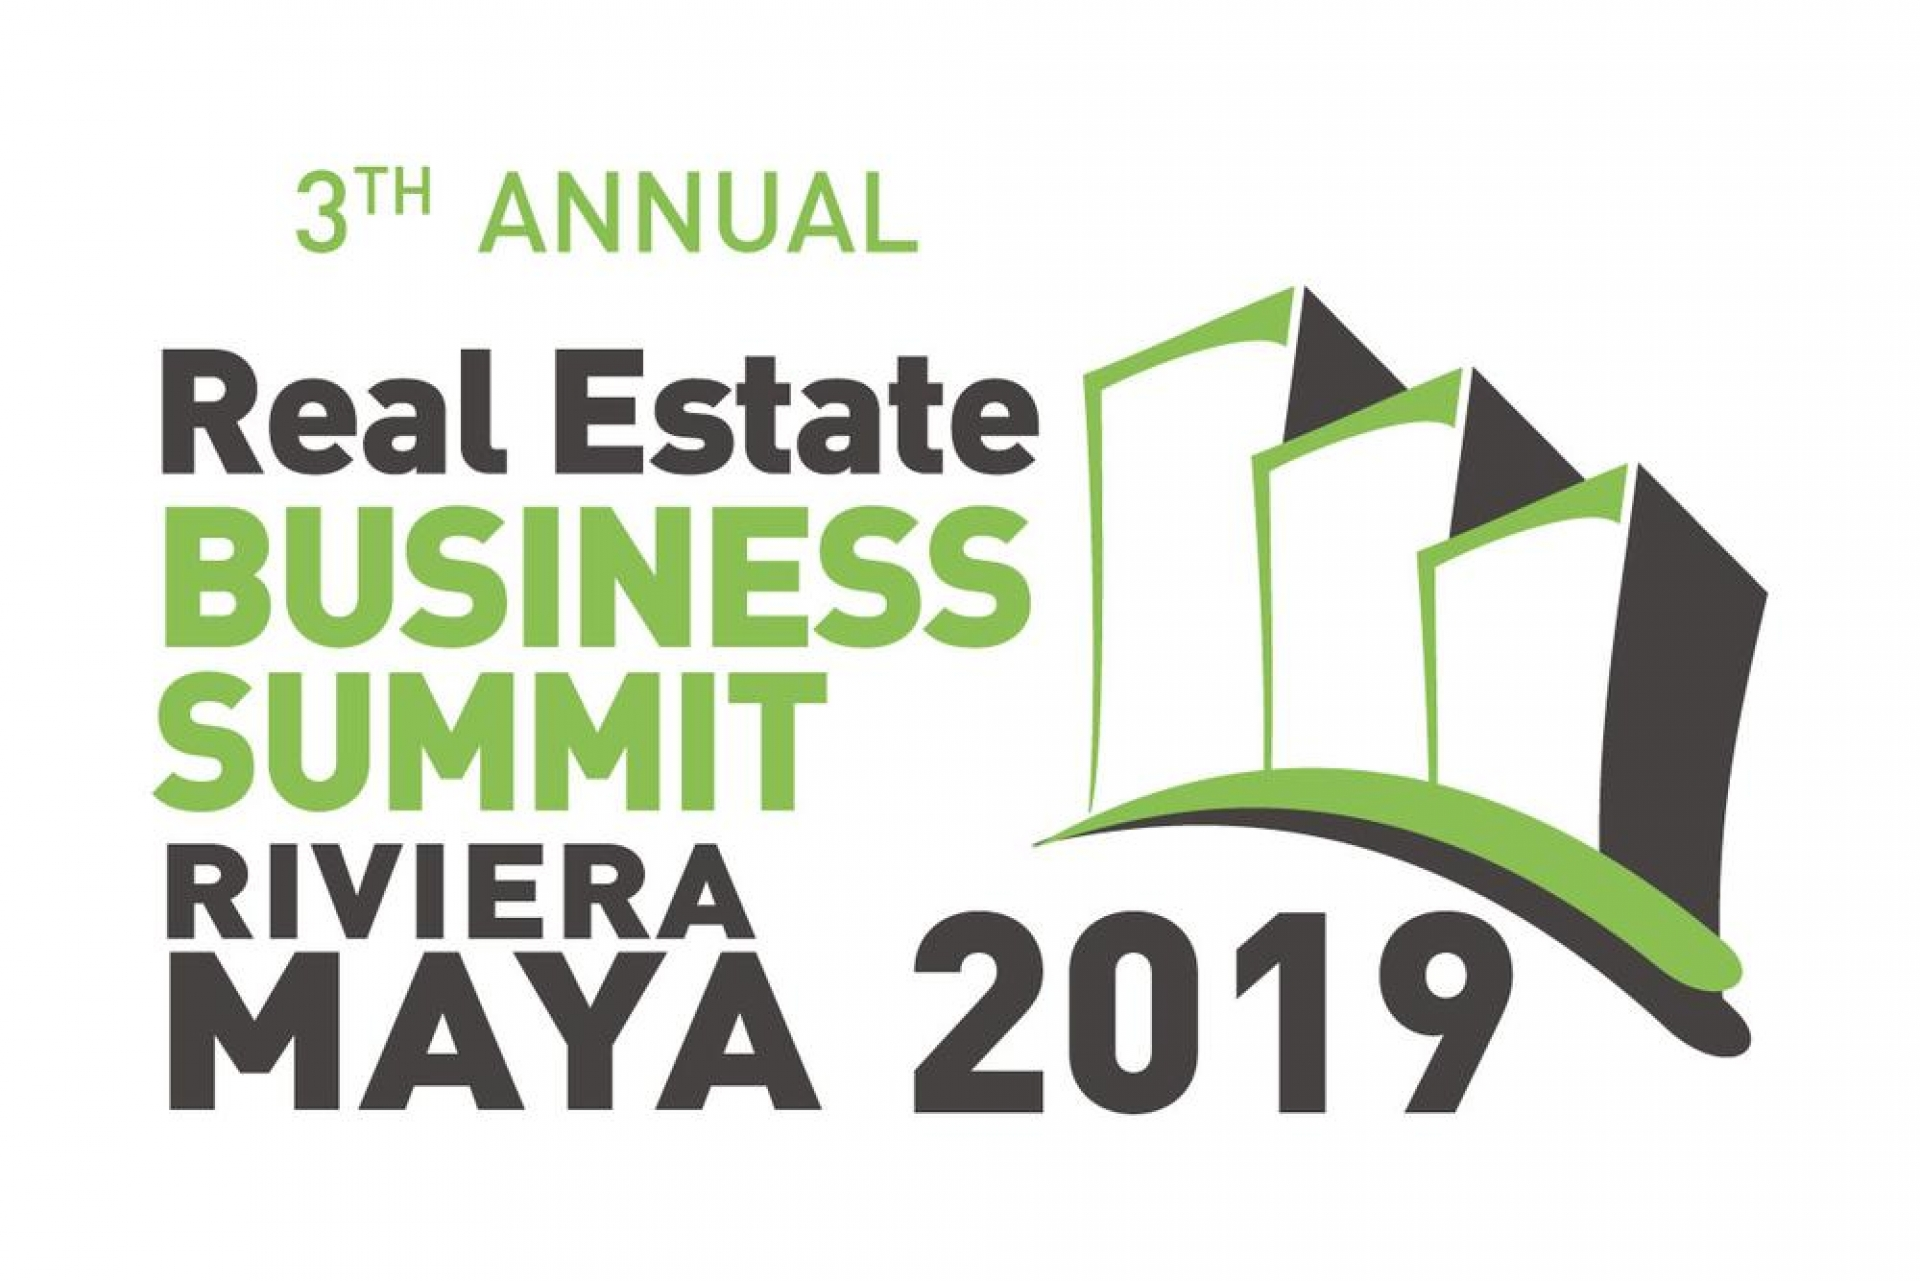 REAL ESTATE SUMMIT RIVIERA MAYA